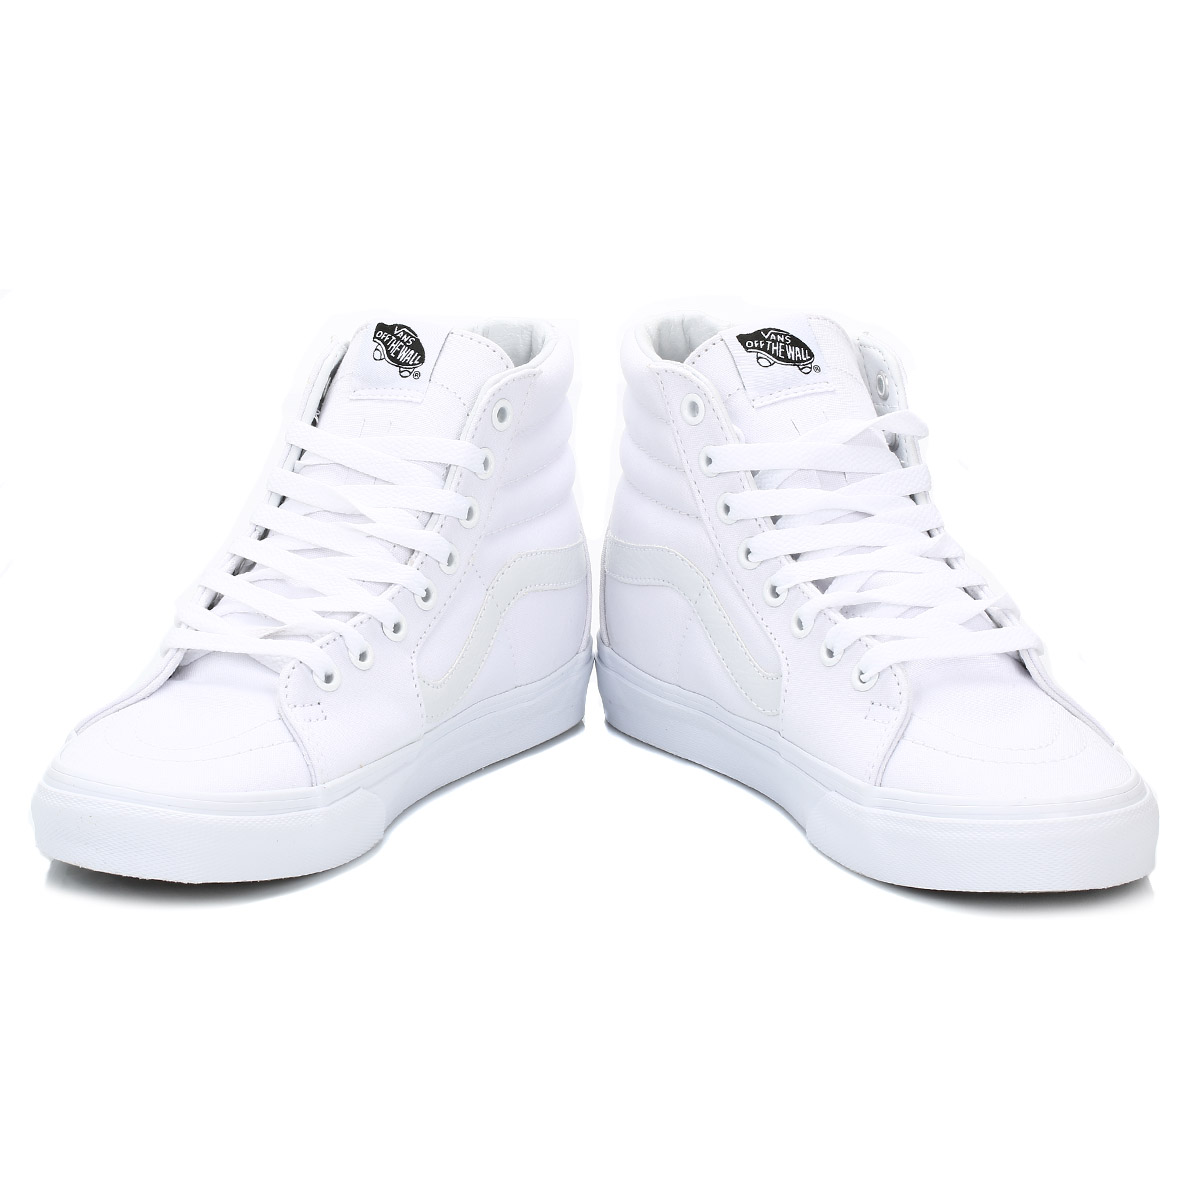 01dcce035138c7 ... of a reinforced padded high top which offers the best protection  available. Boasting a canvas upper